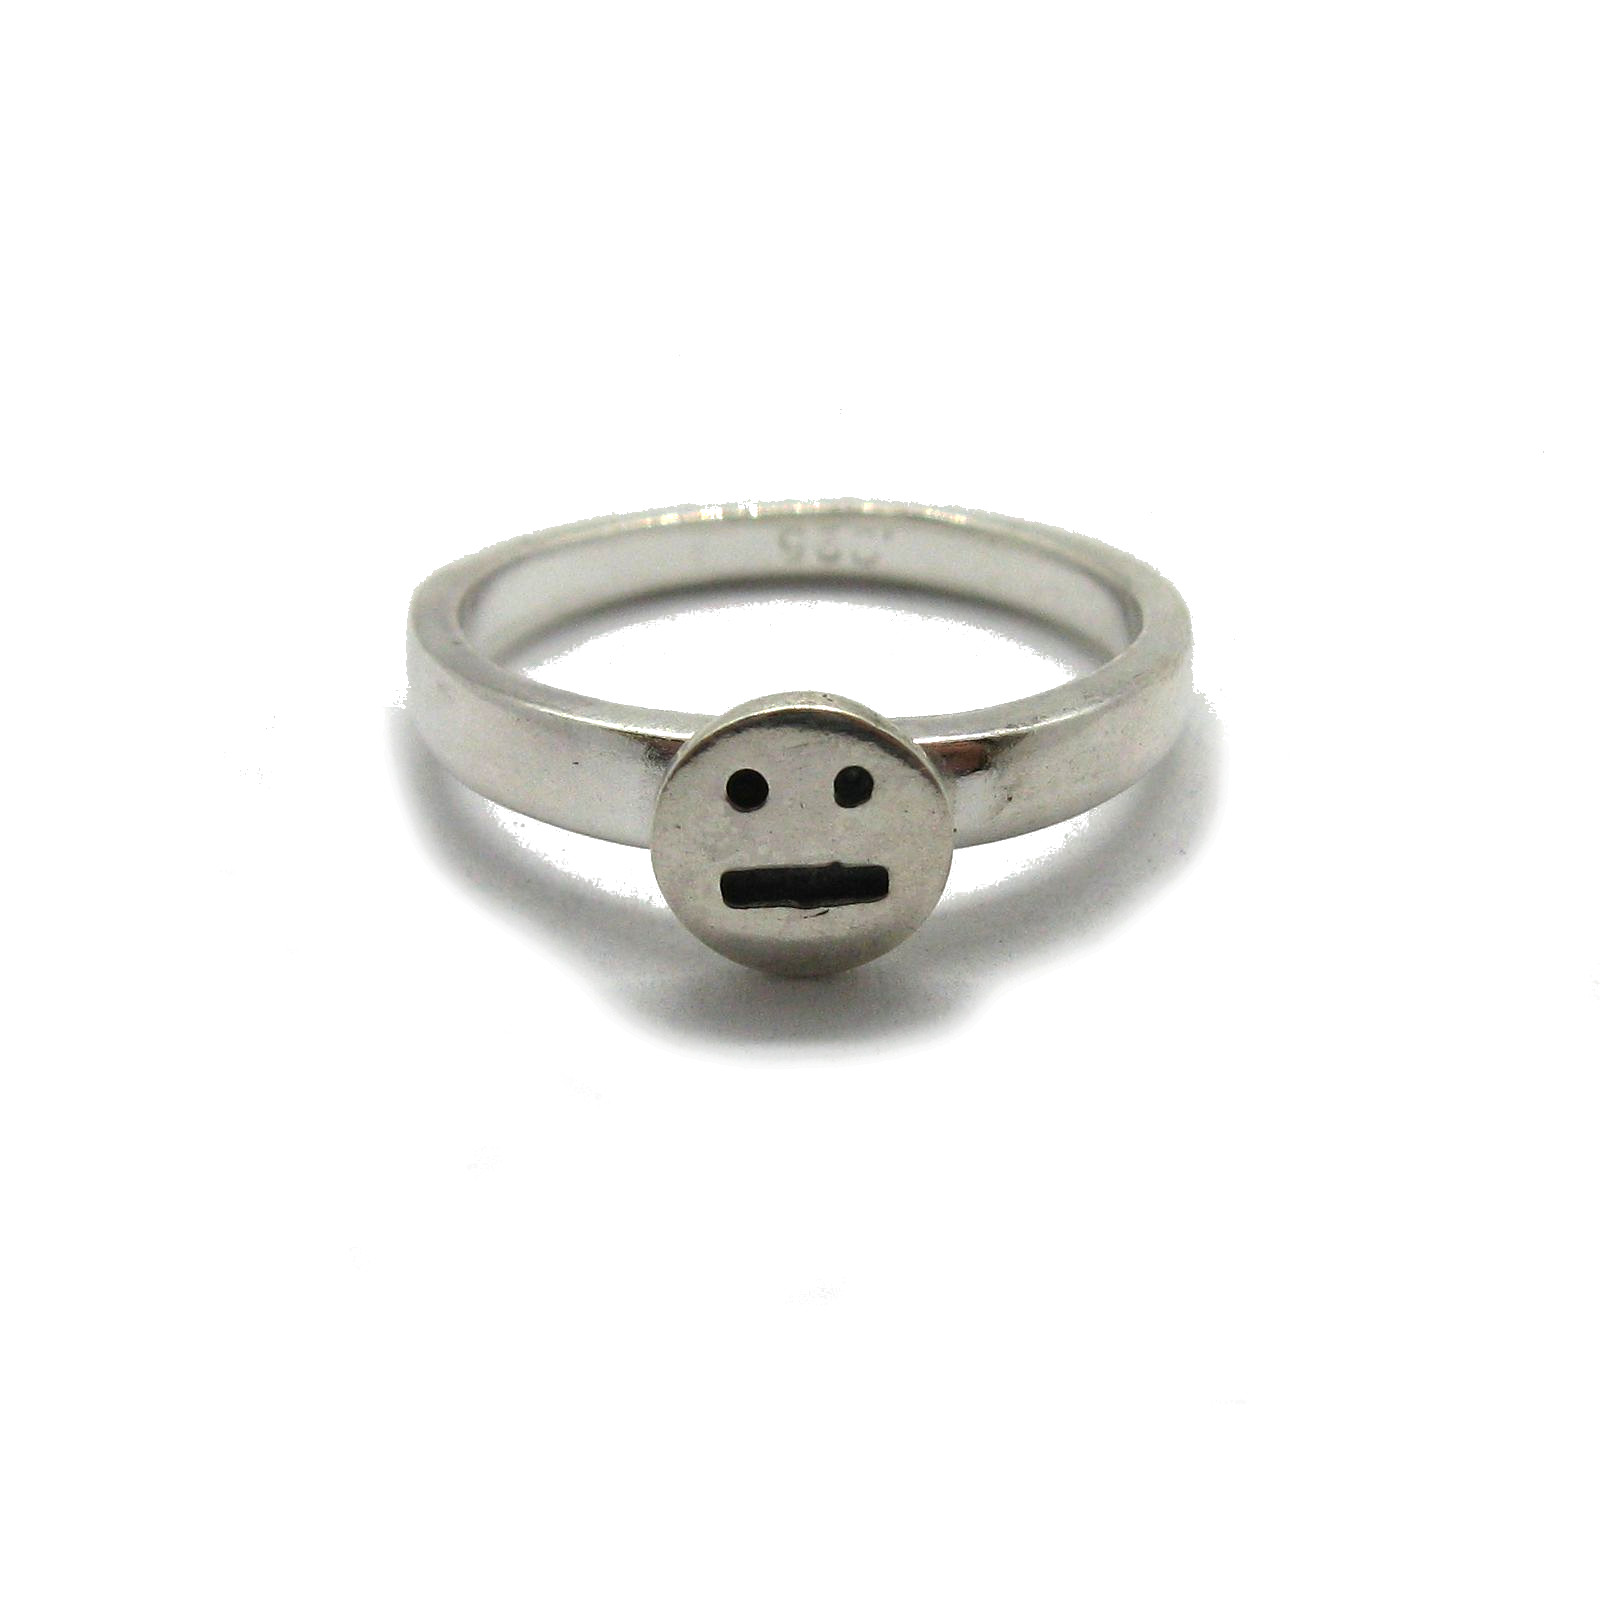 Silver ring - R001849